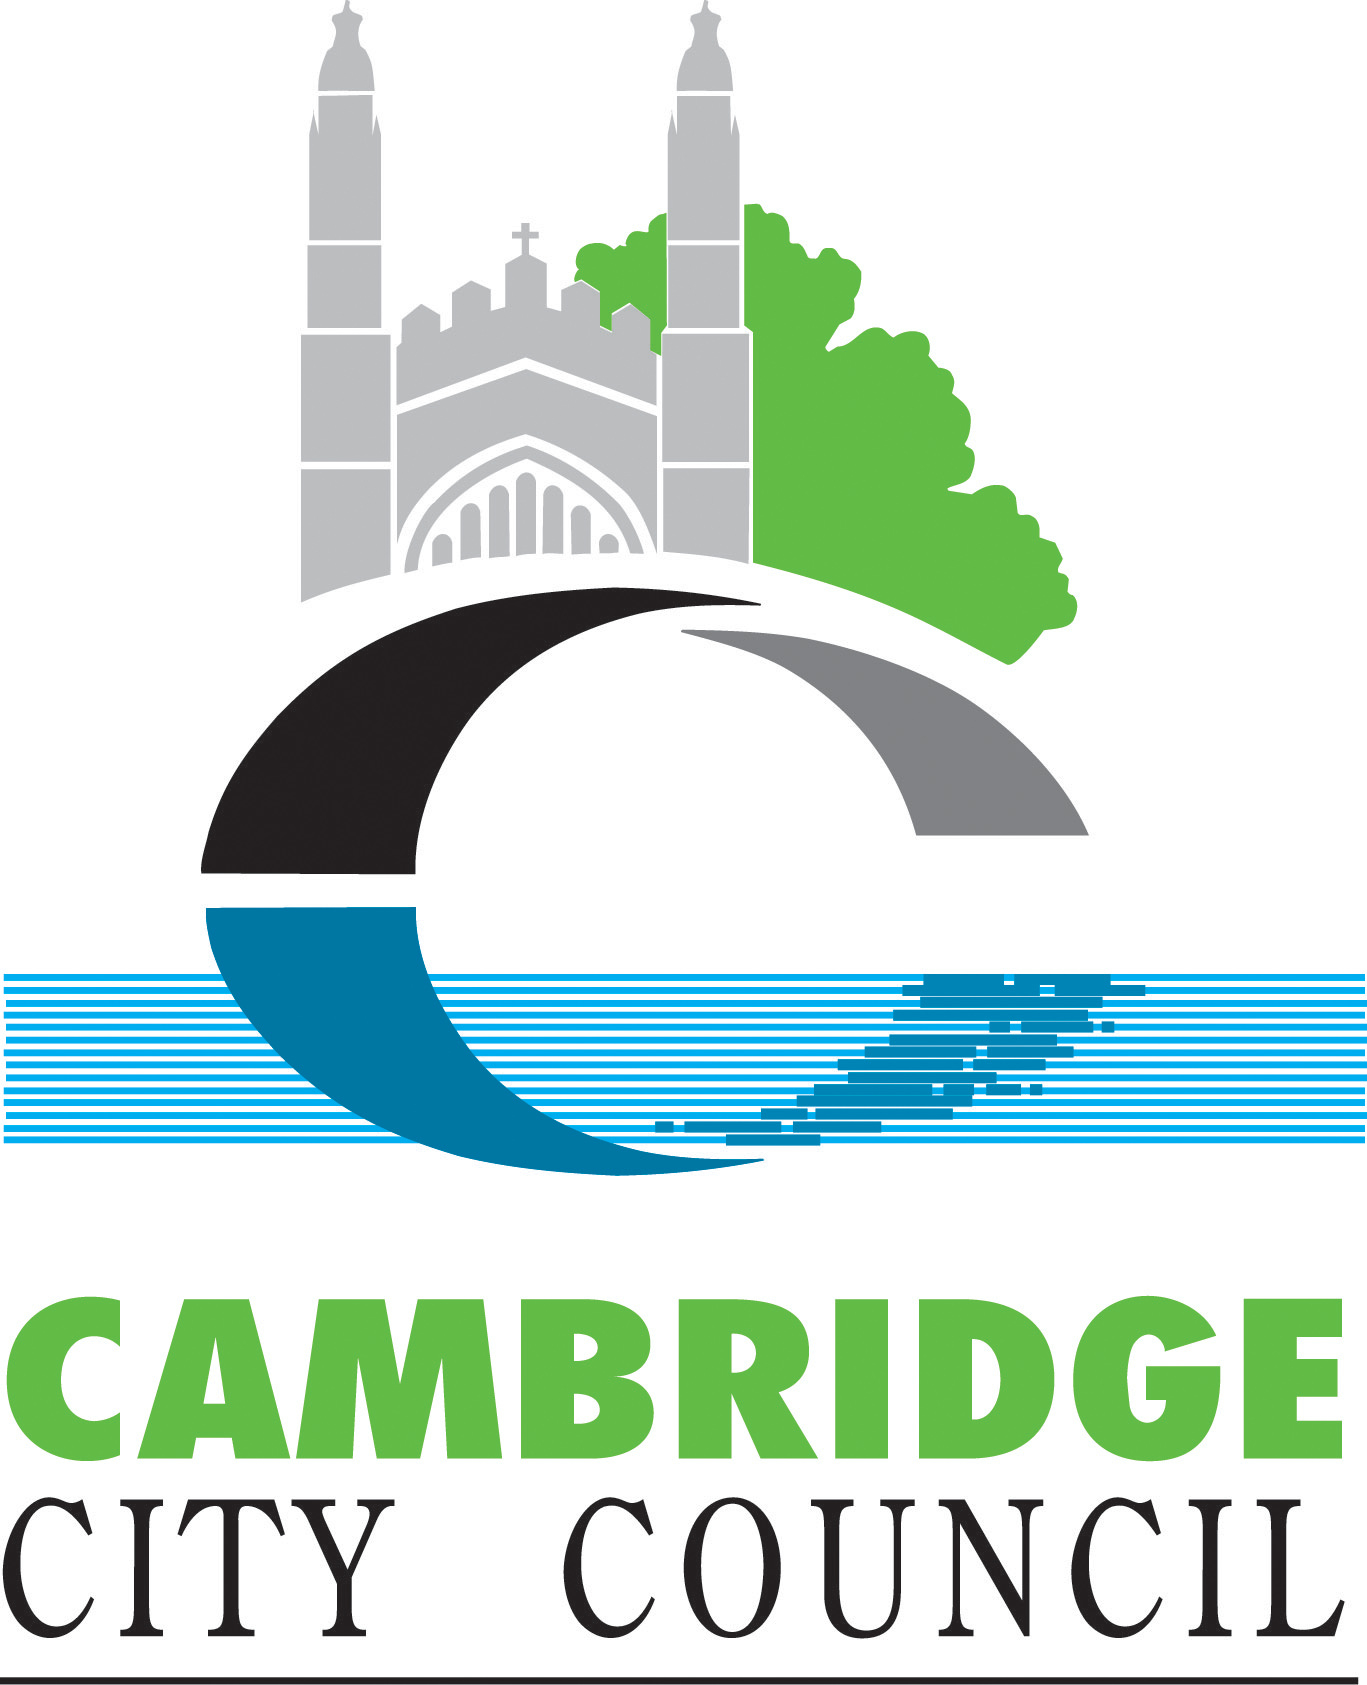 cambridge-city-council-logo-co